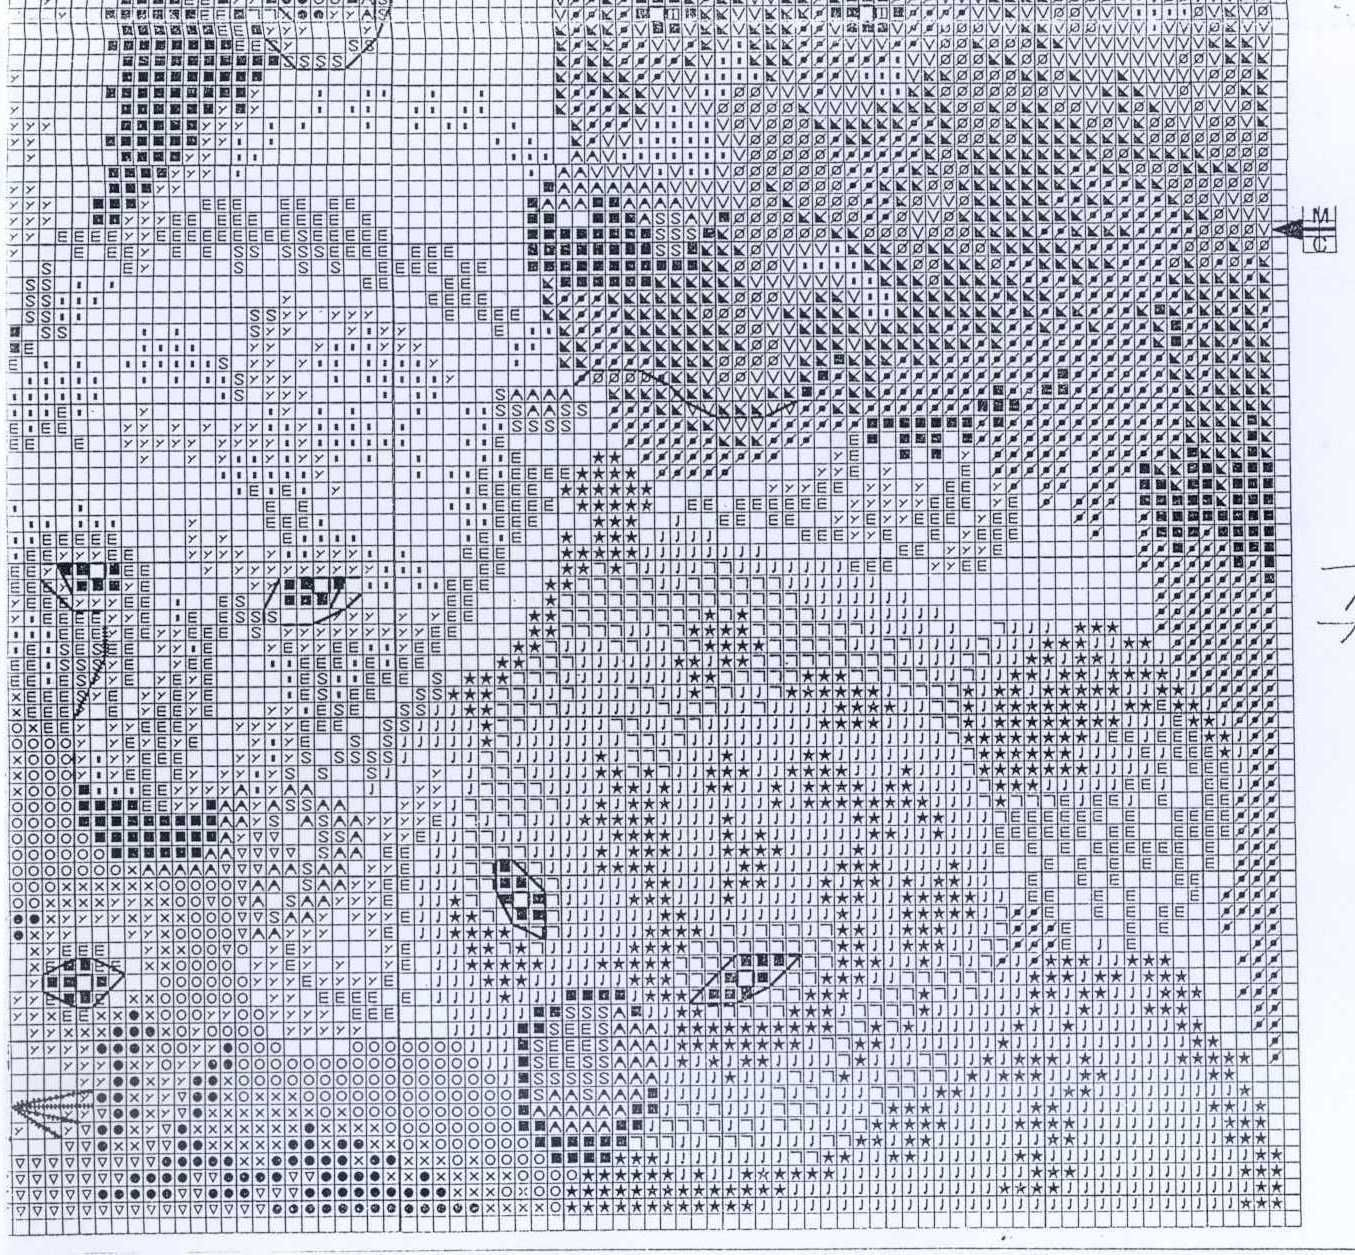 Cross-stitch patterns - Borduur patronen (8)